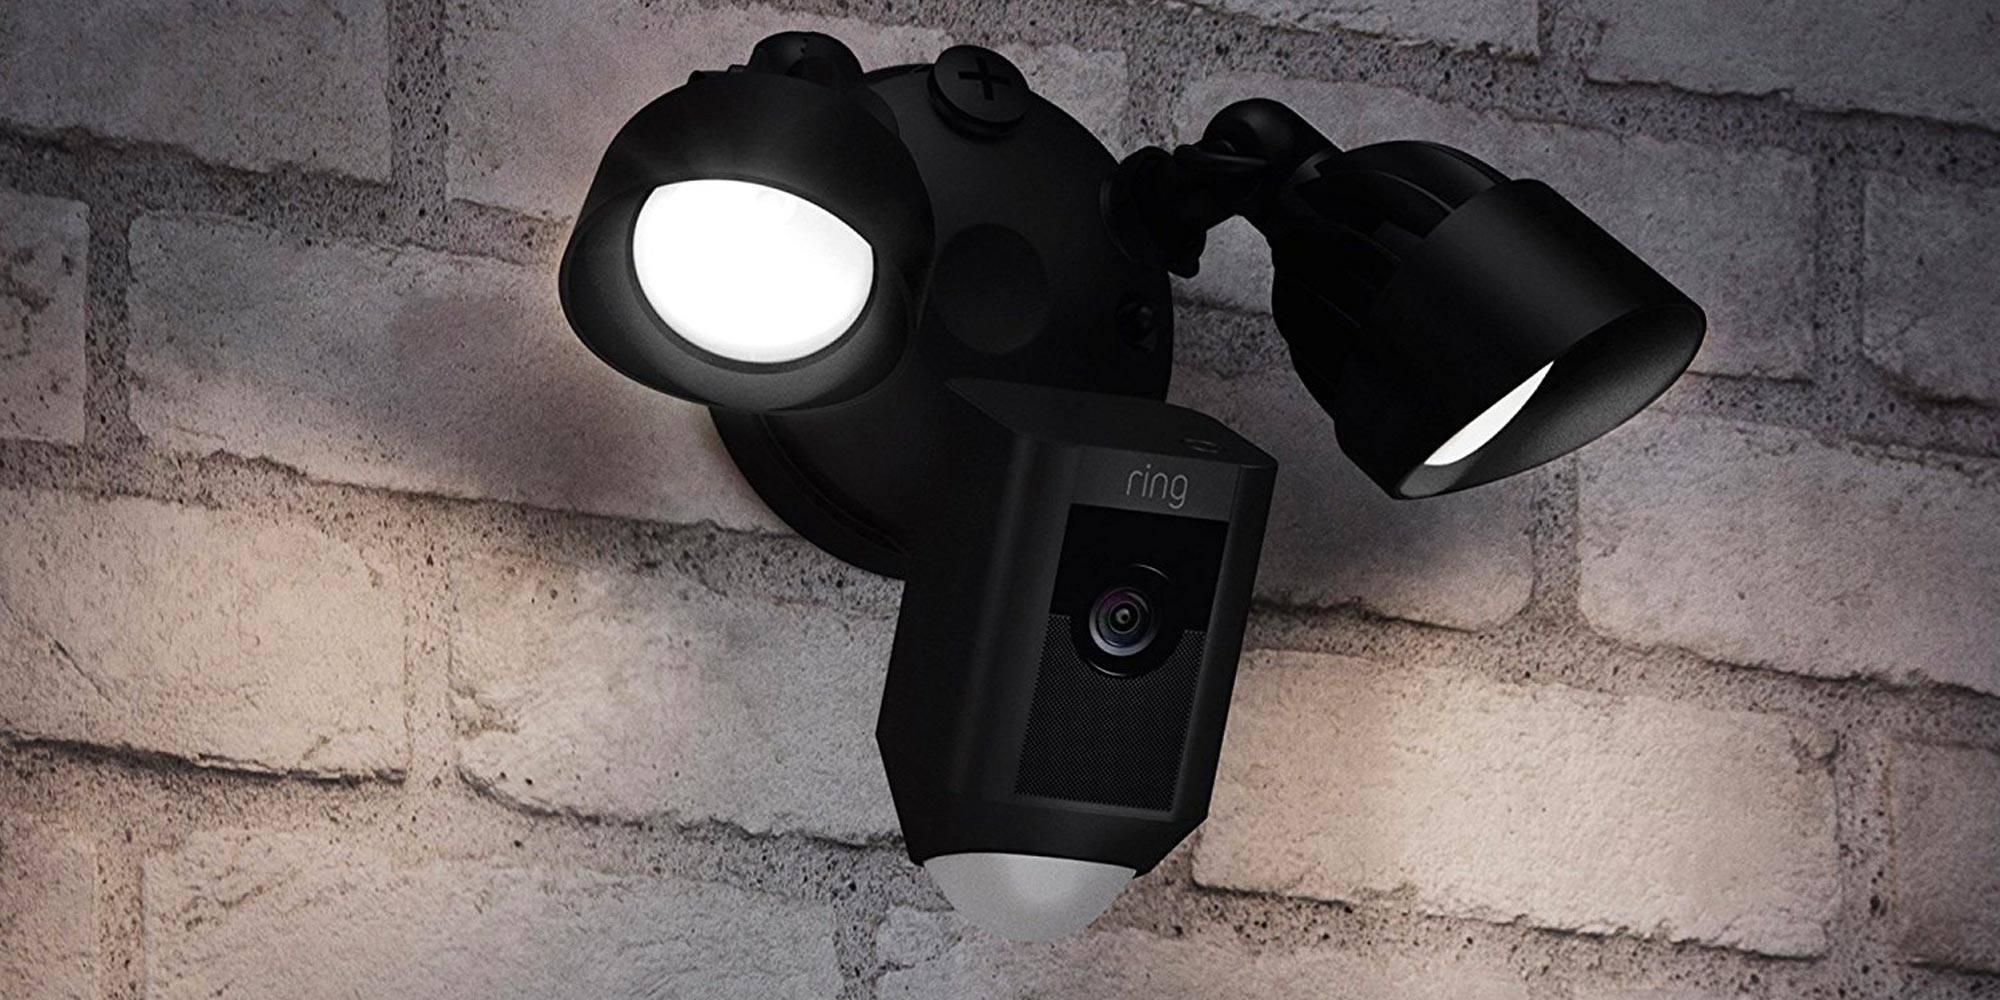 Home Depot's 1-day Ring sale offers deals on cameras, floodlights and more